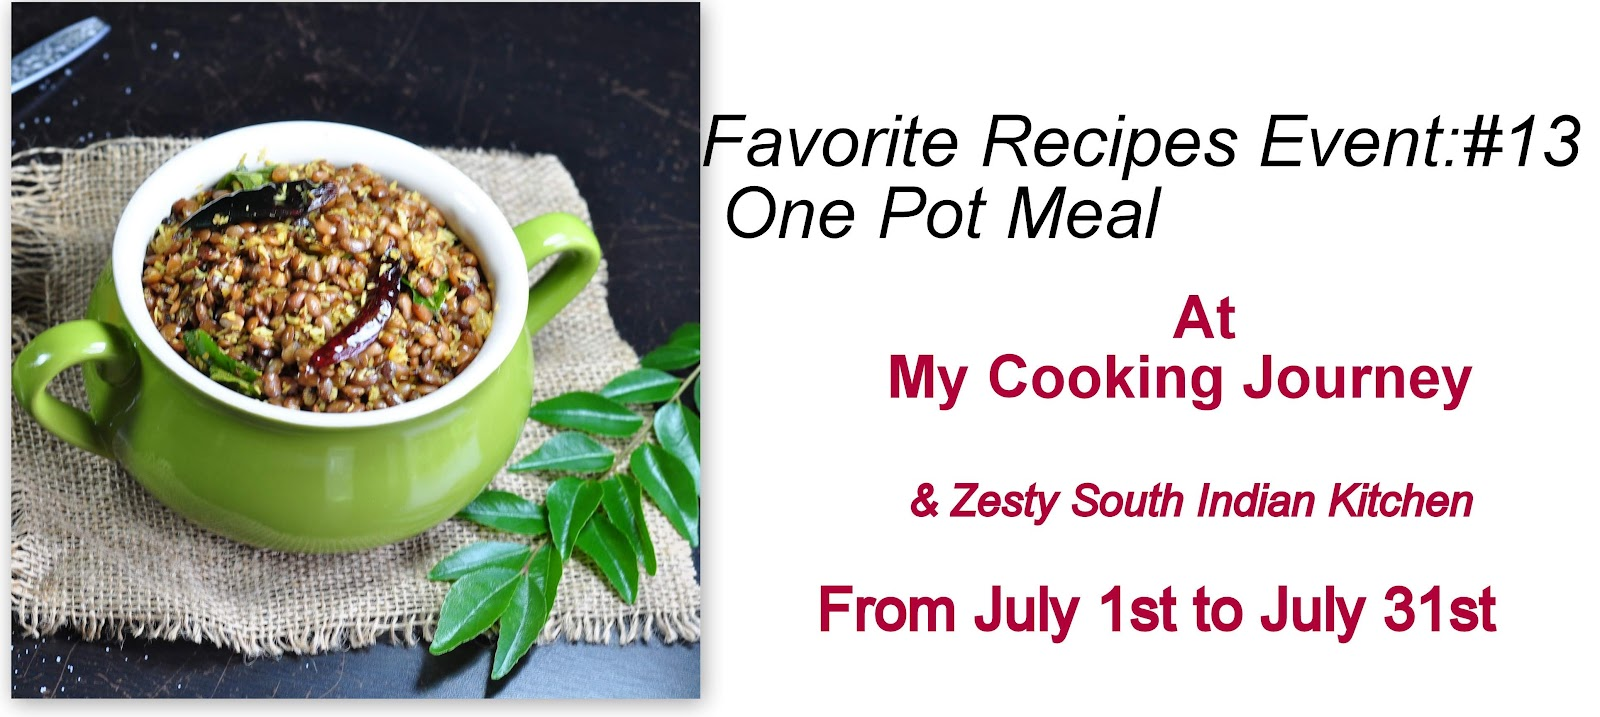 Favorite recipes event one pot meal zesty south indian kitchen this month favorite recipes event is taking palace at my cooking journey e has great blog and amazing recipes as well as traditional indian recipes forumfinder Images